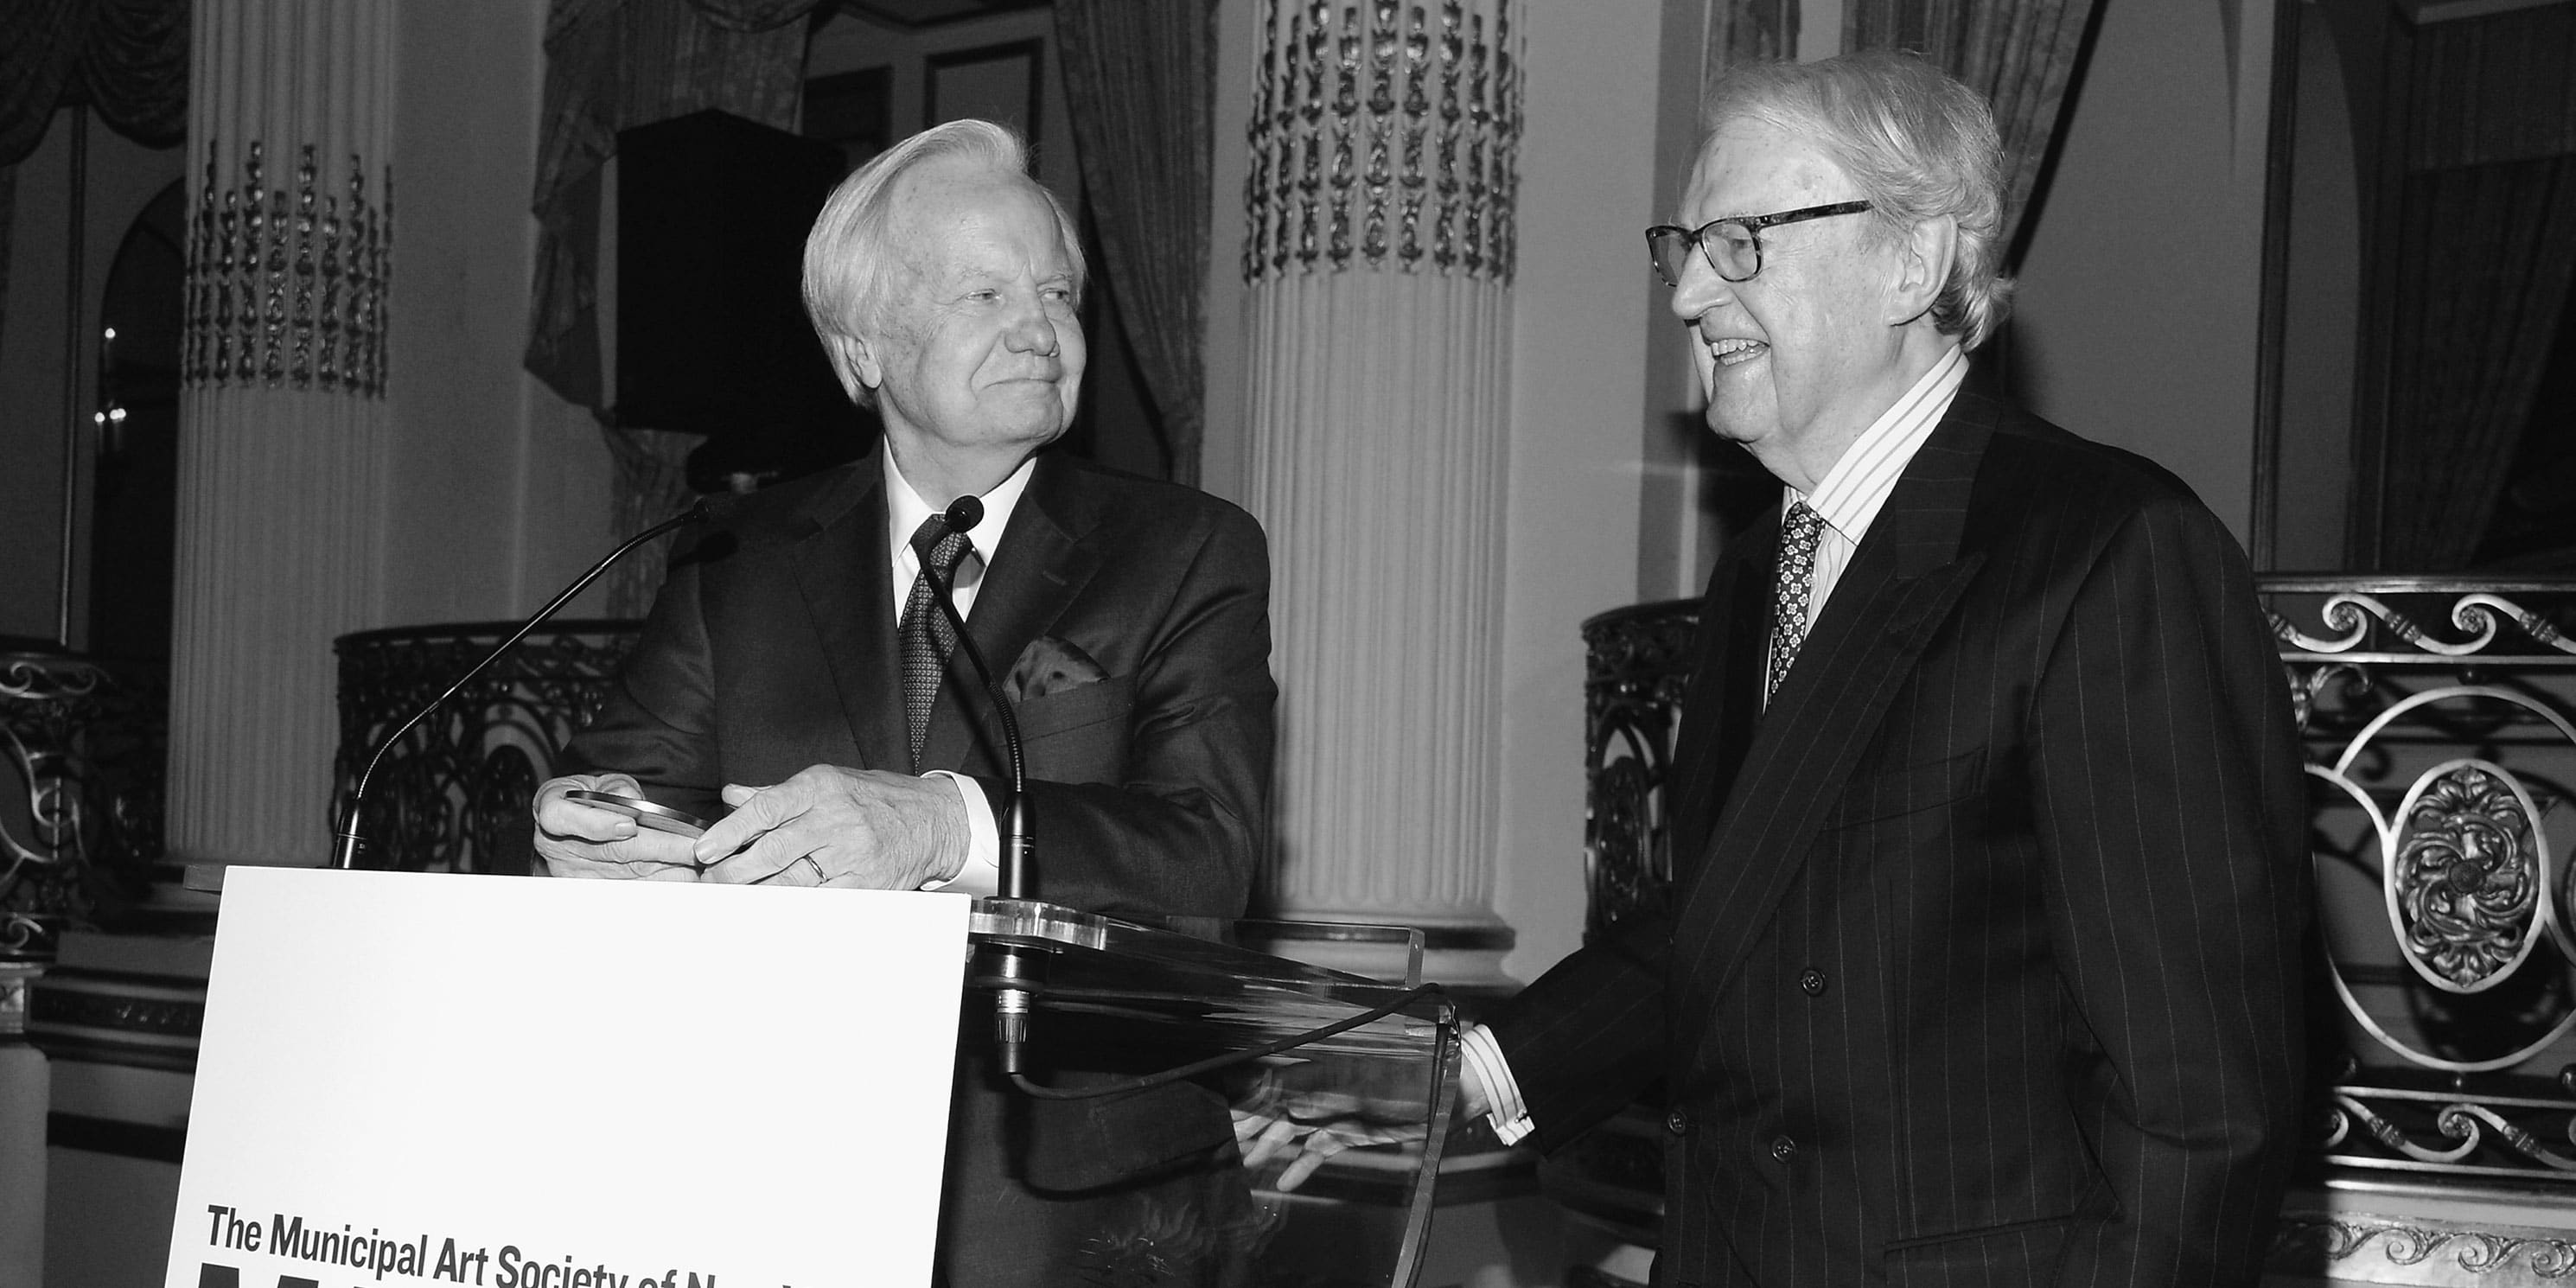 William vanden Heuvel and Bill Moyers at the 2016 Gala